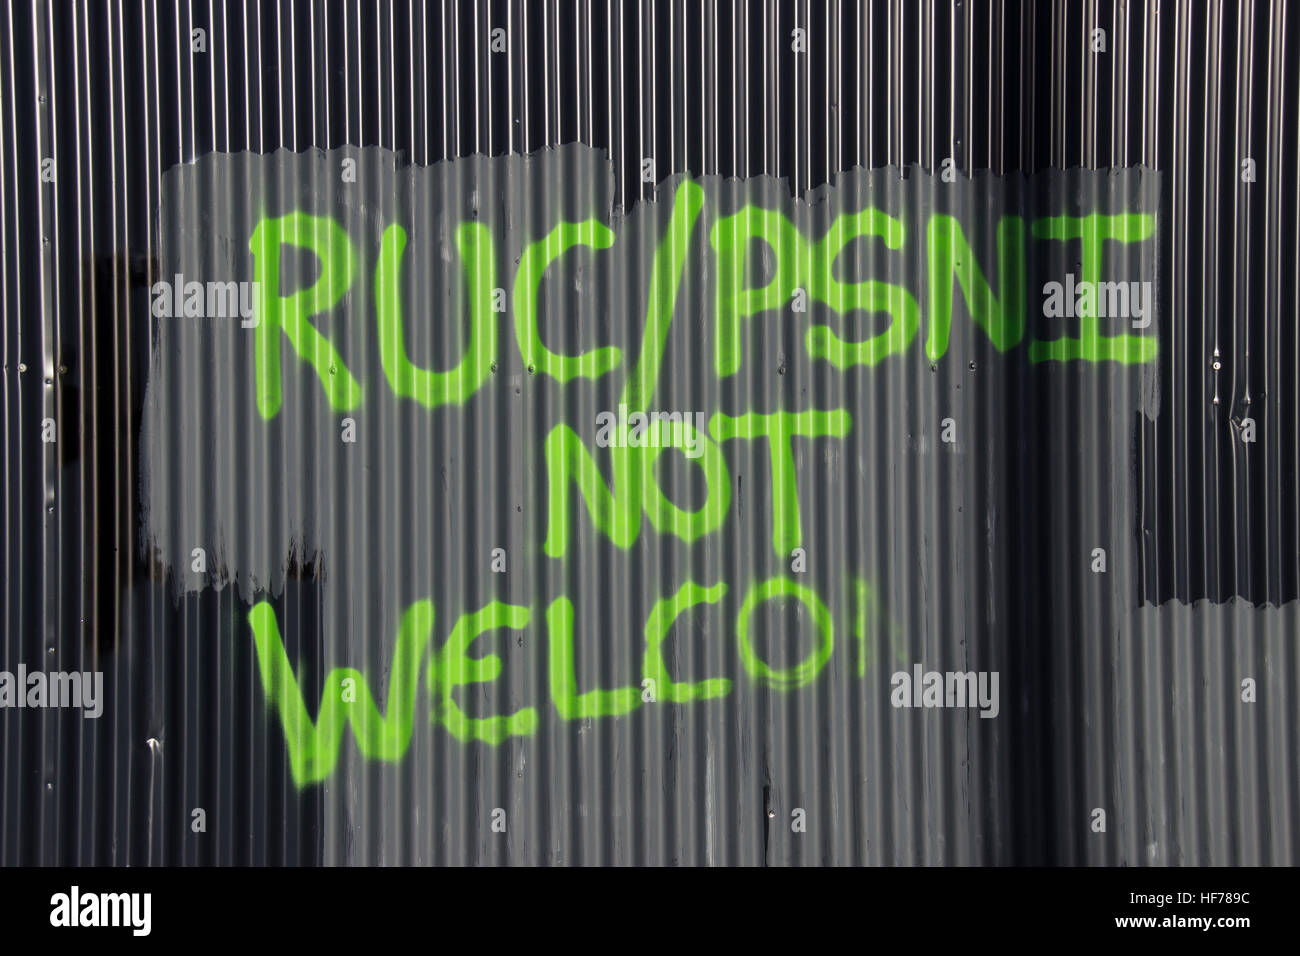 RUC PSI not welcome. - Stock Image